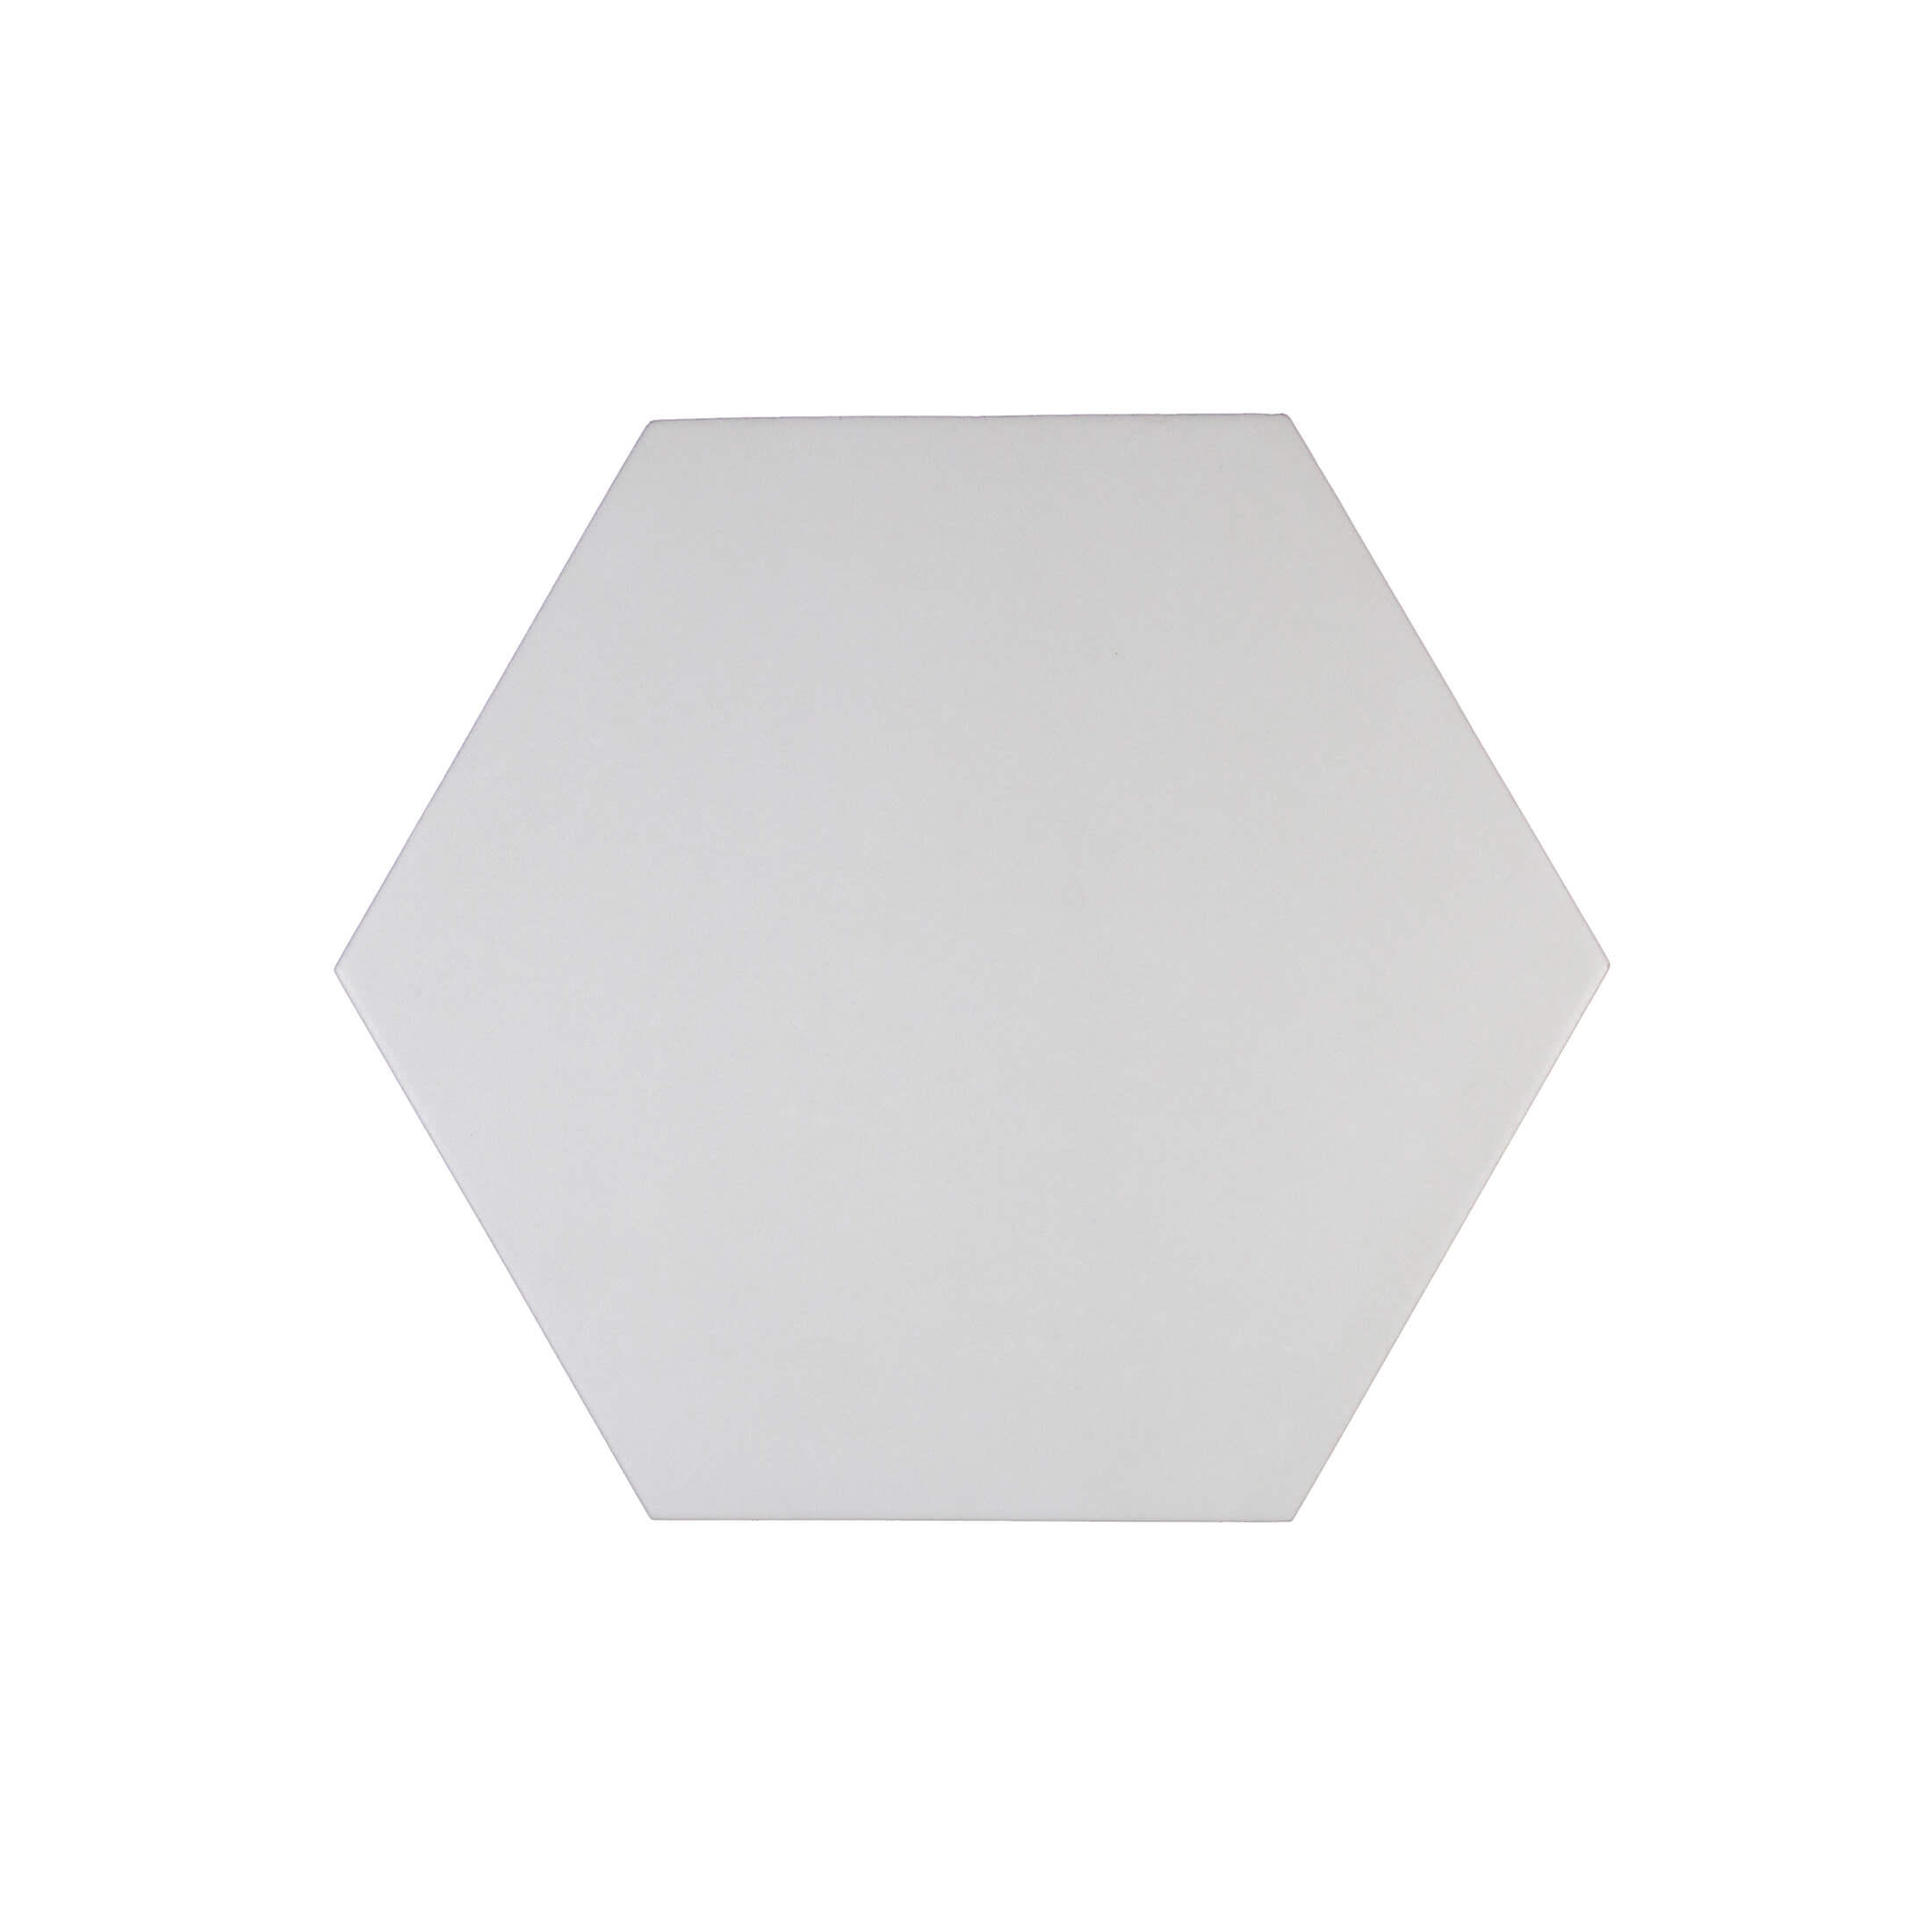 ADPV9014 - PAVIMENTO LIGHT GRAY - 20 cm X 2,3 cm